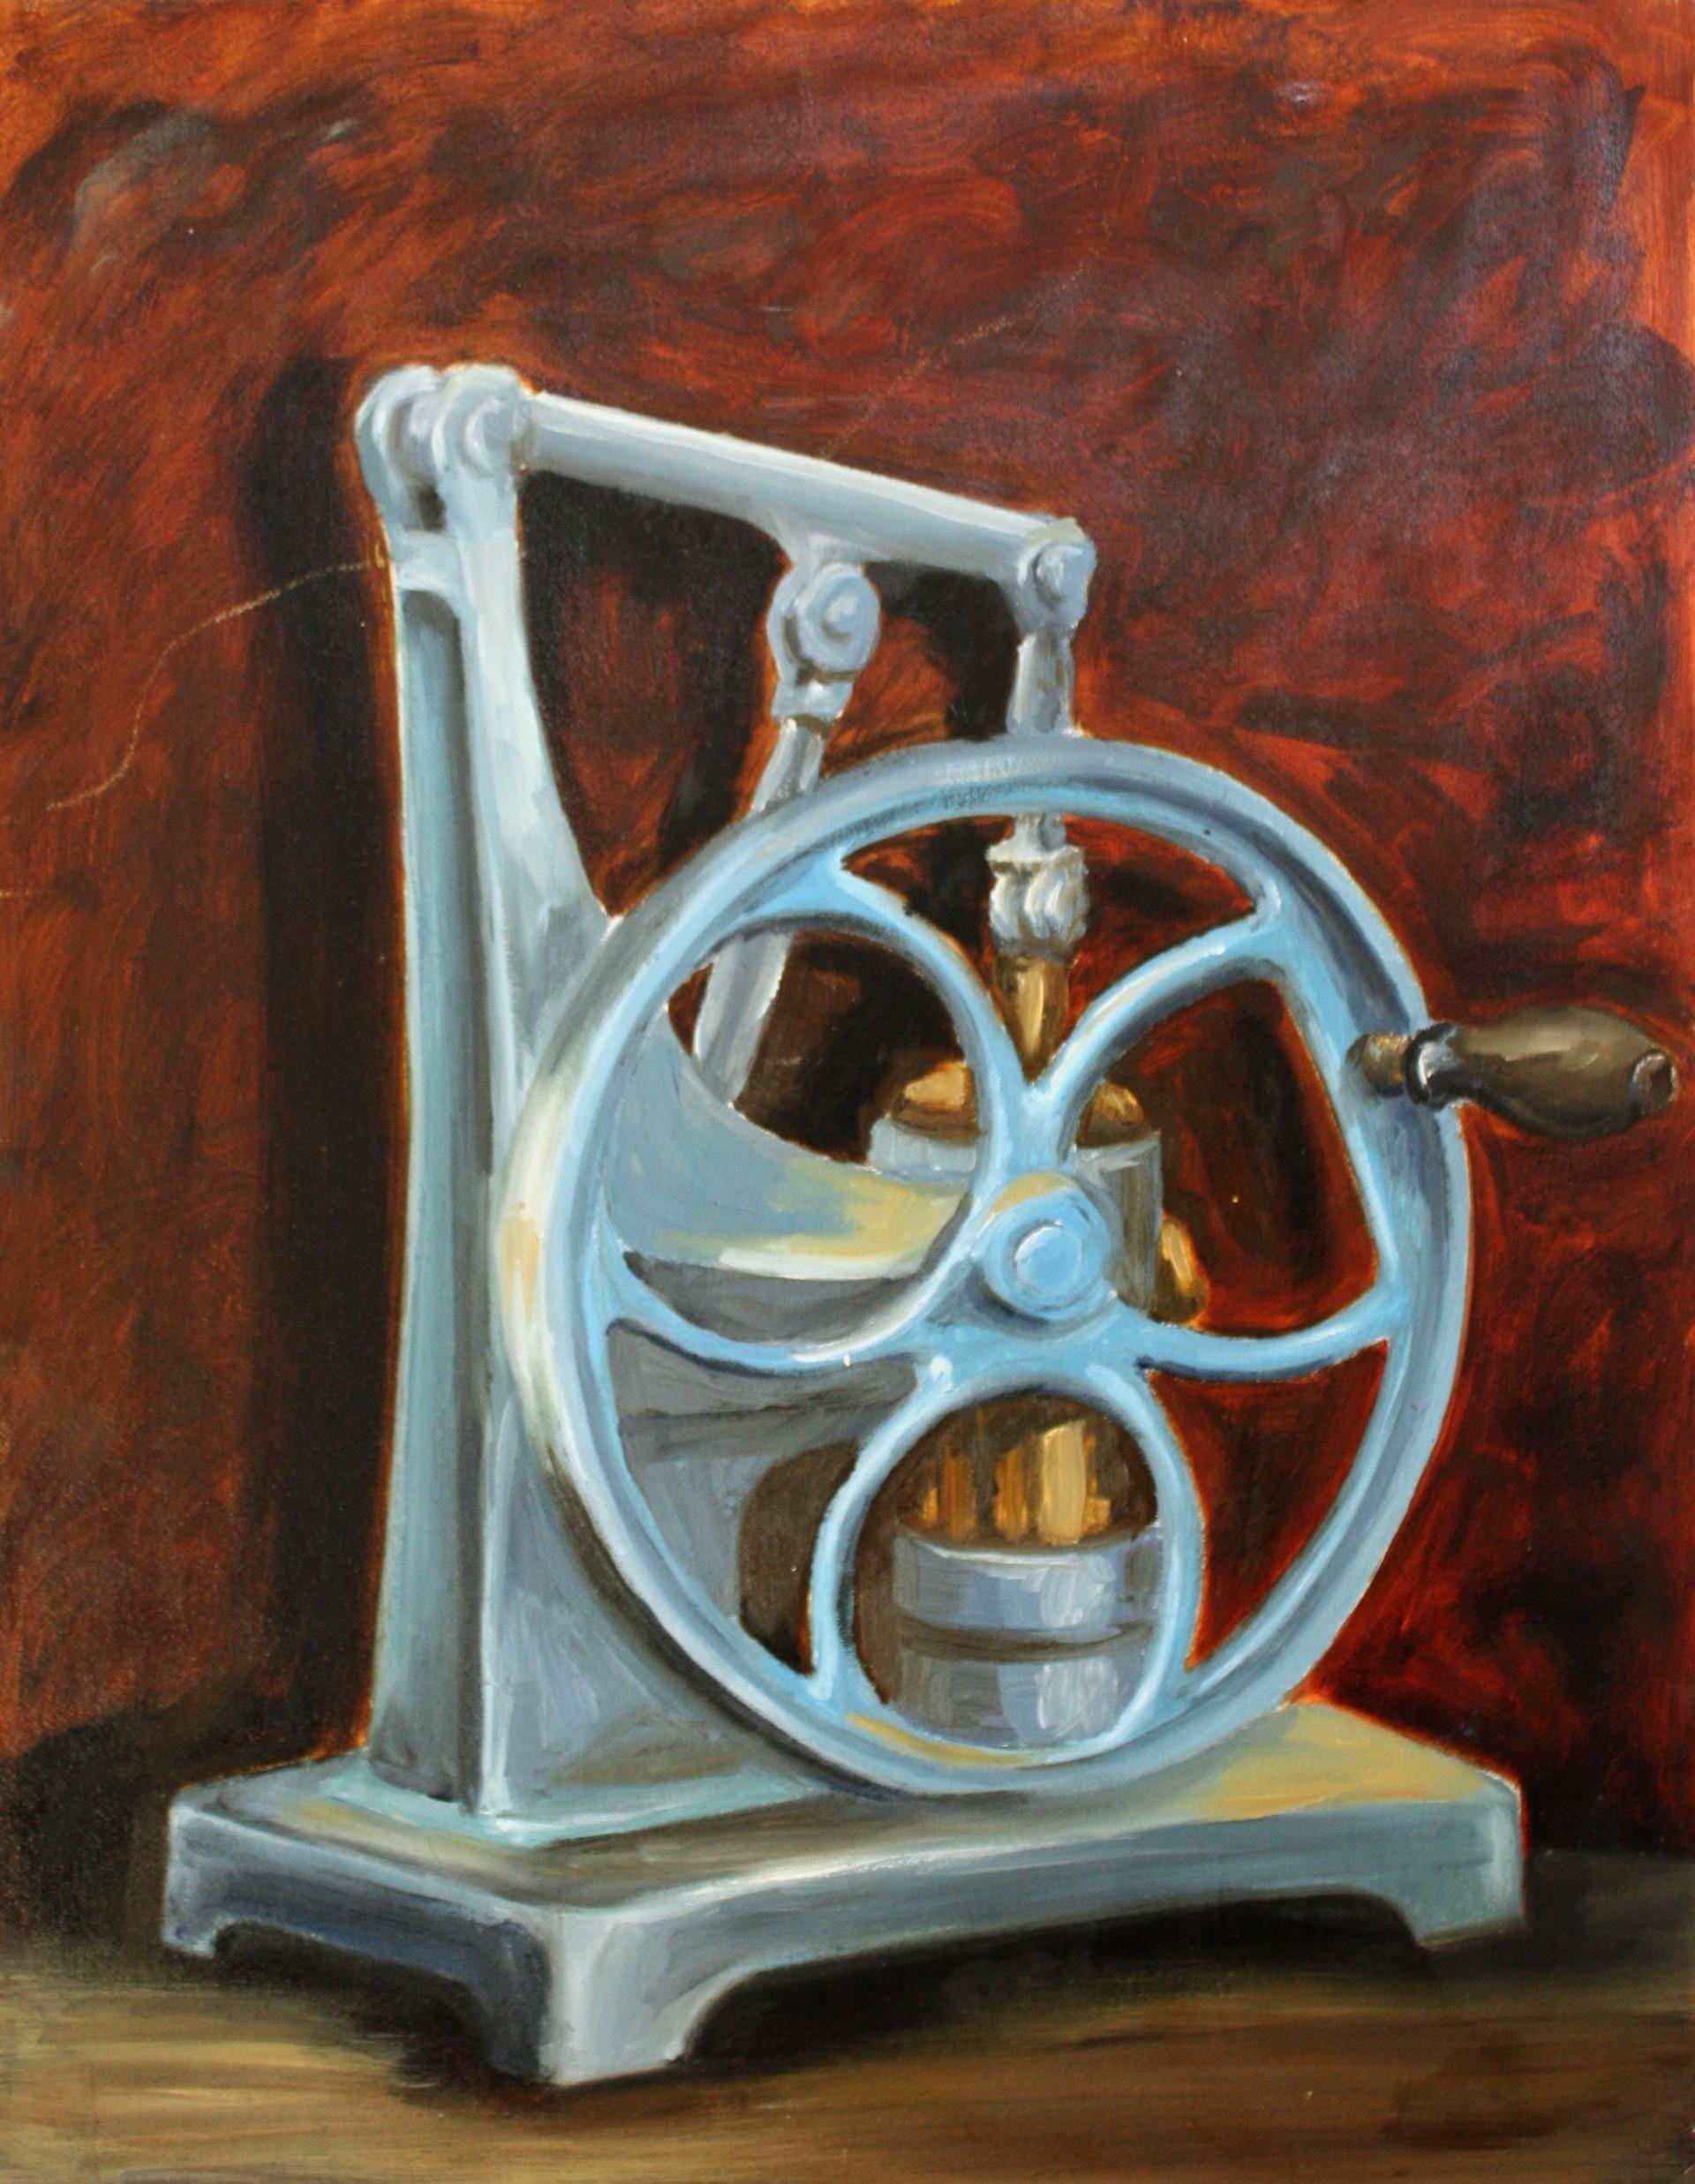 1996 - Old Pump - oil on canvas board